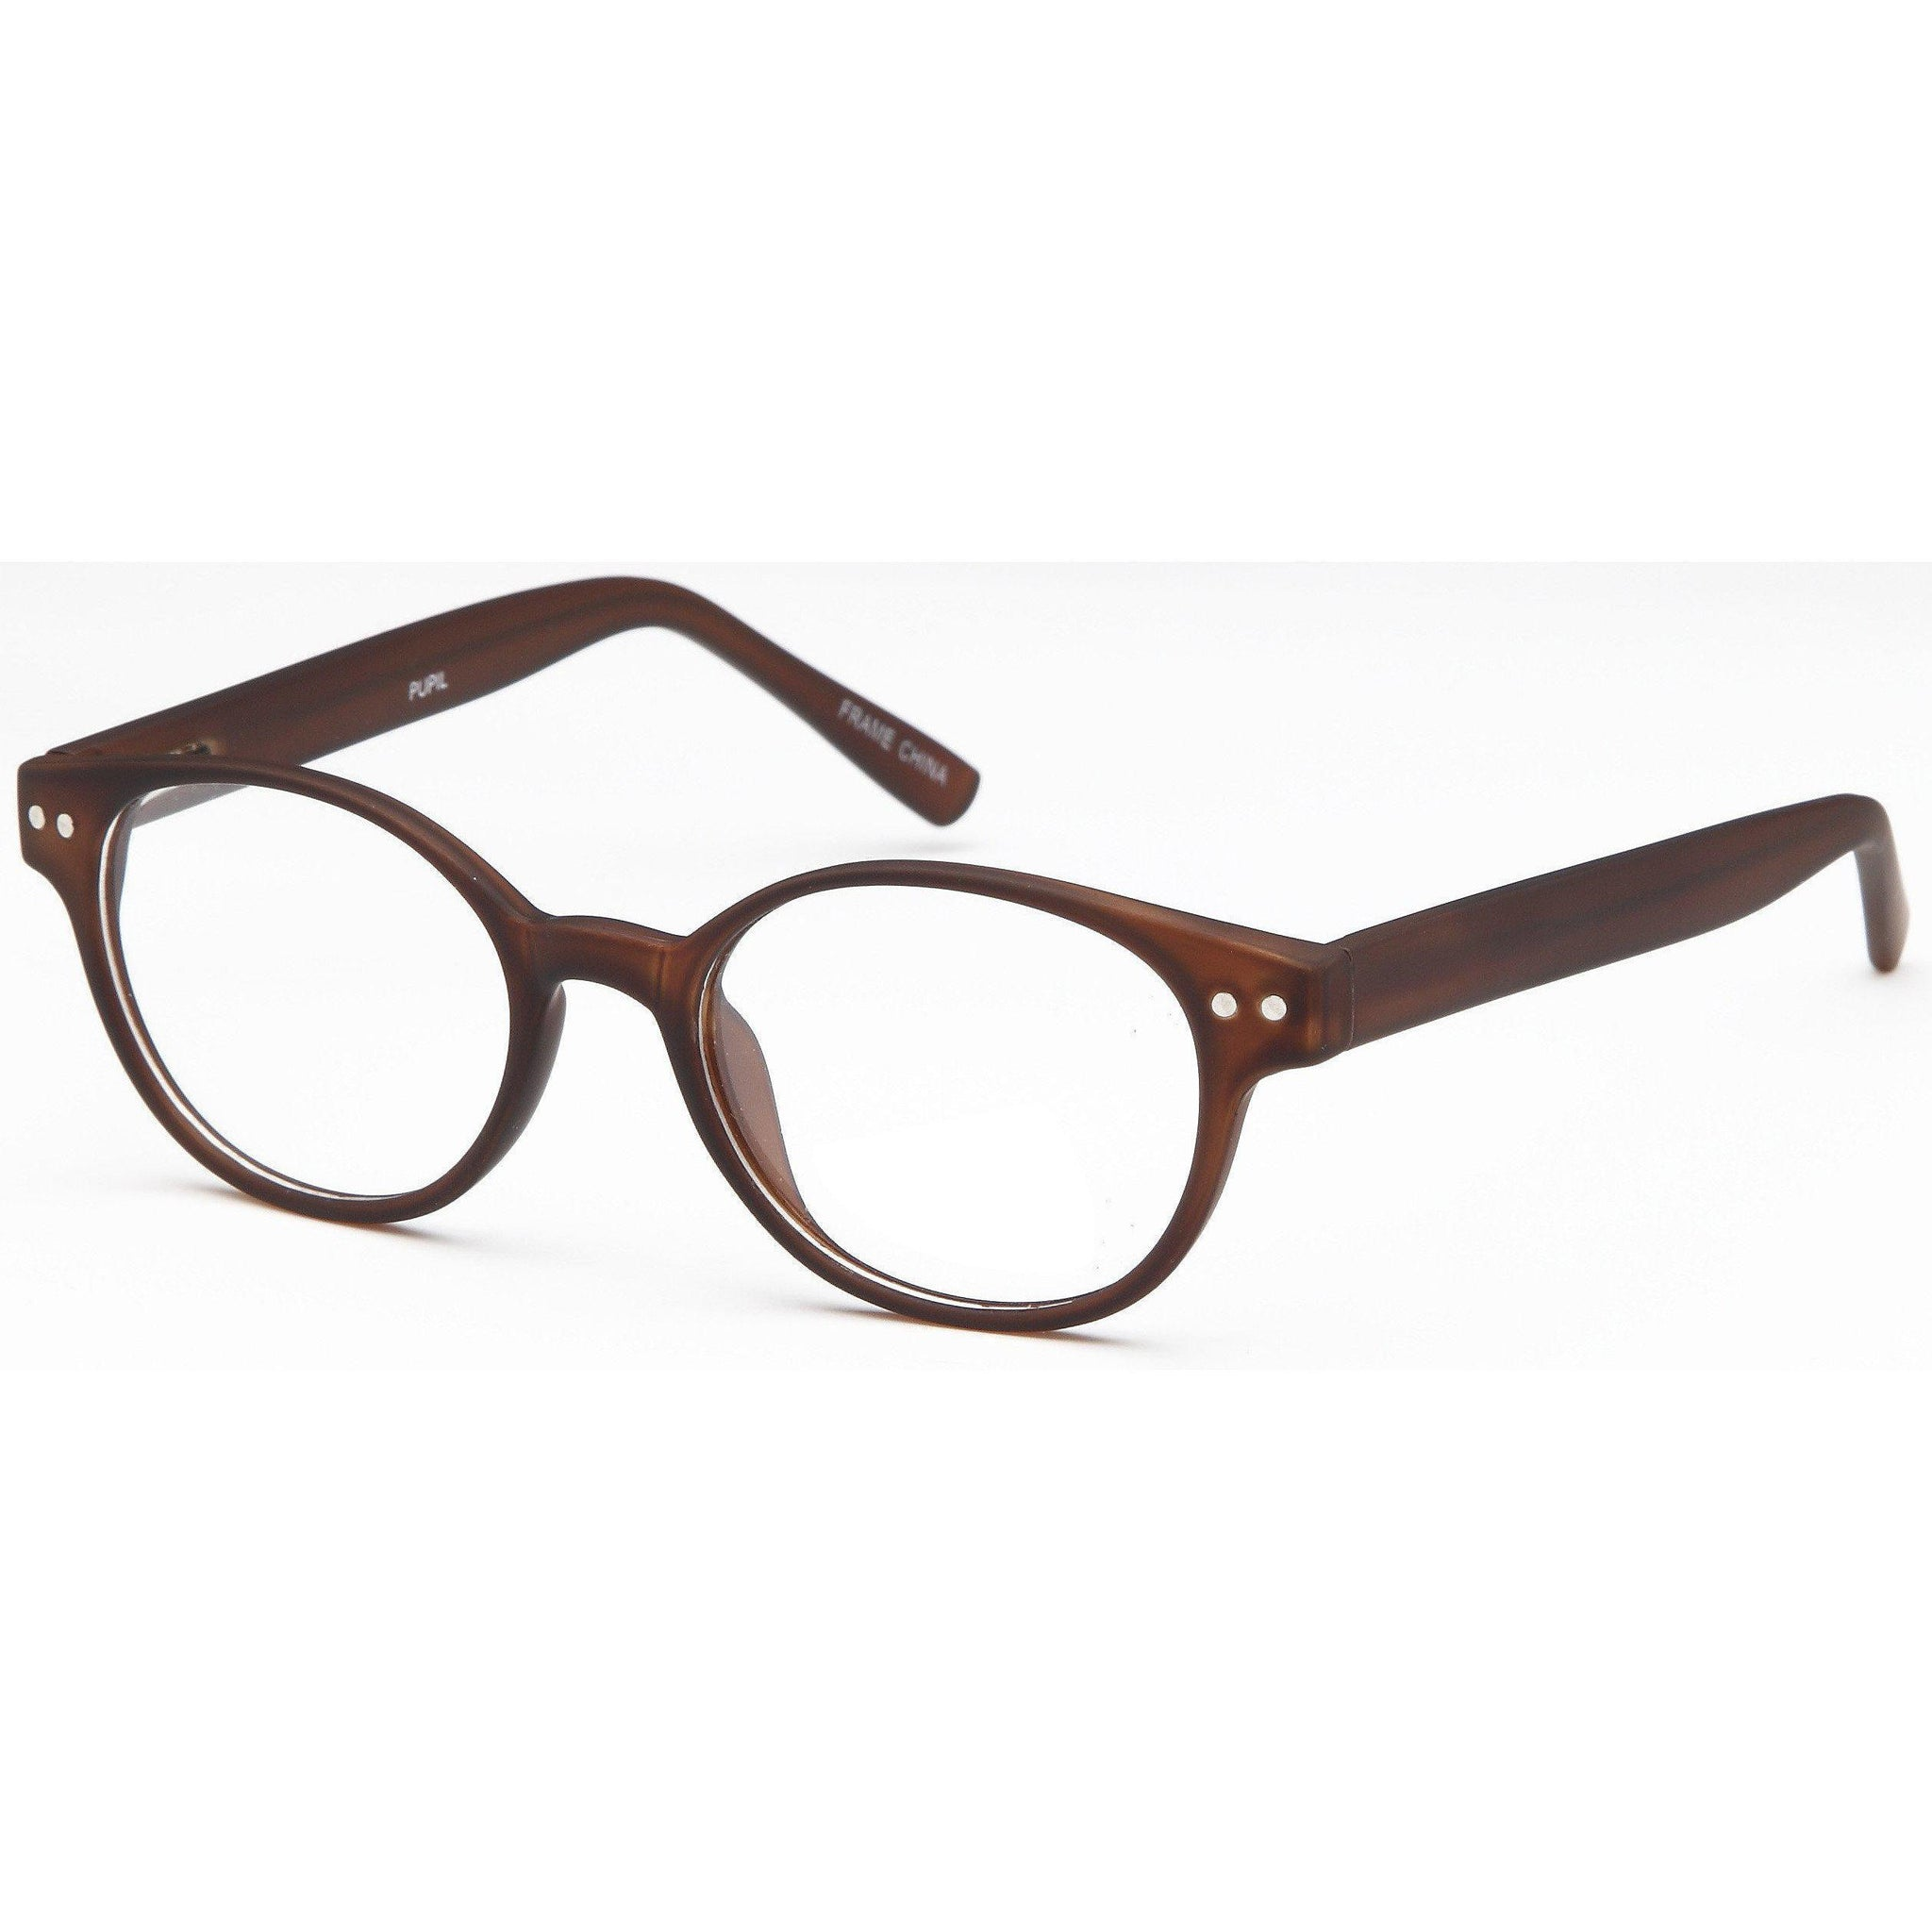 GEN Y Prescription Glasses PUPIL Eyeglasses Frame